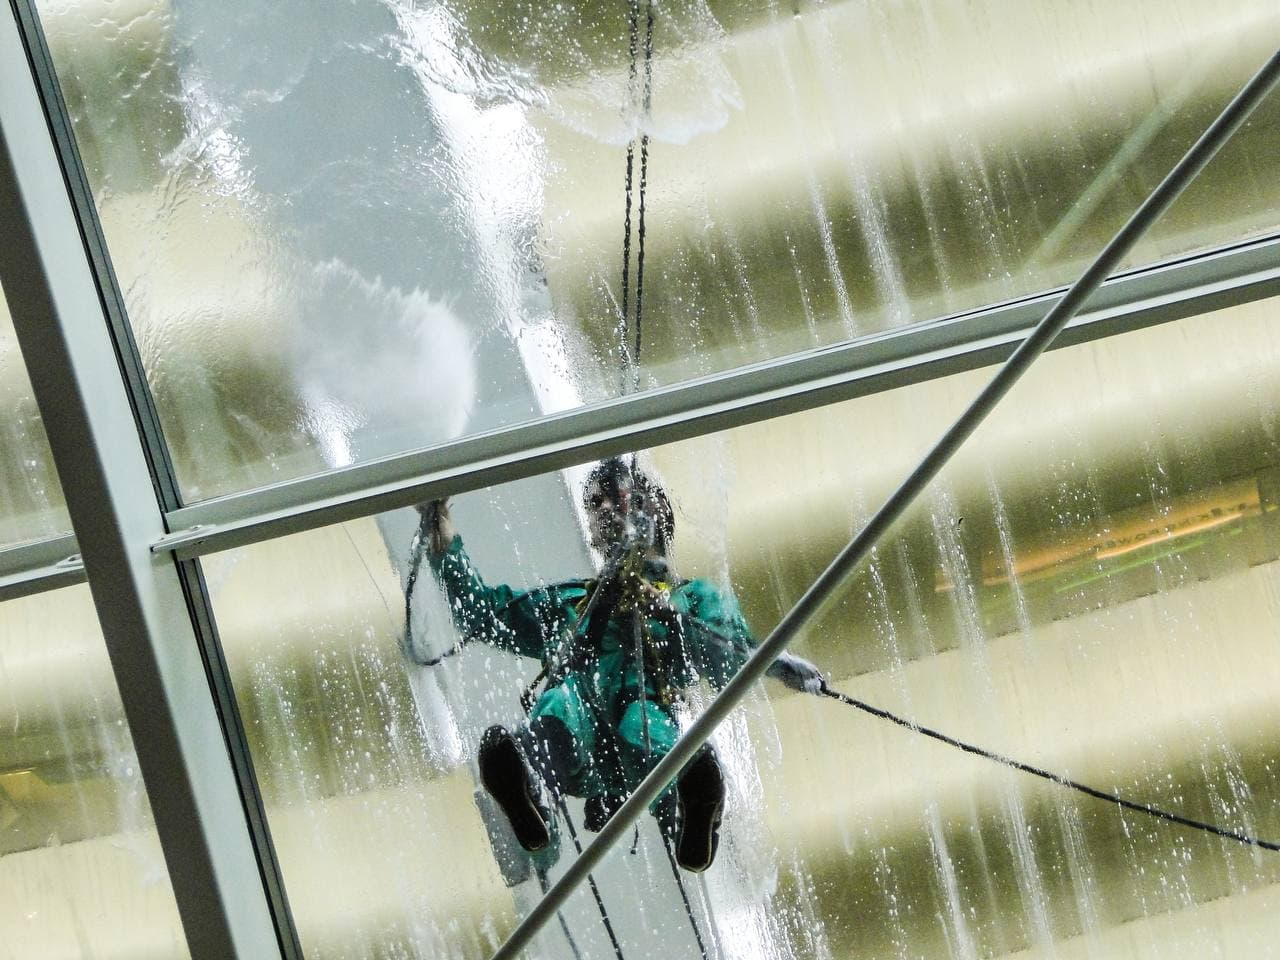 window cleaning pressure washer